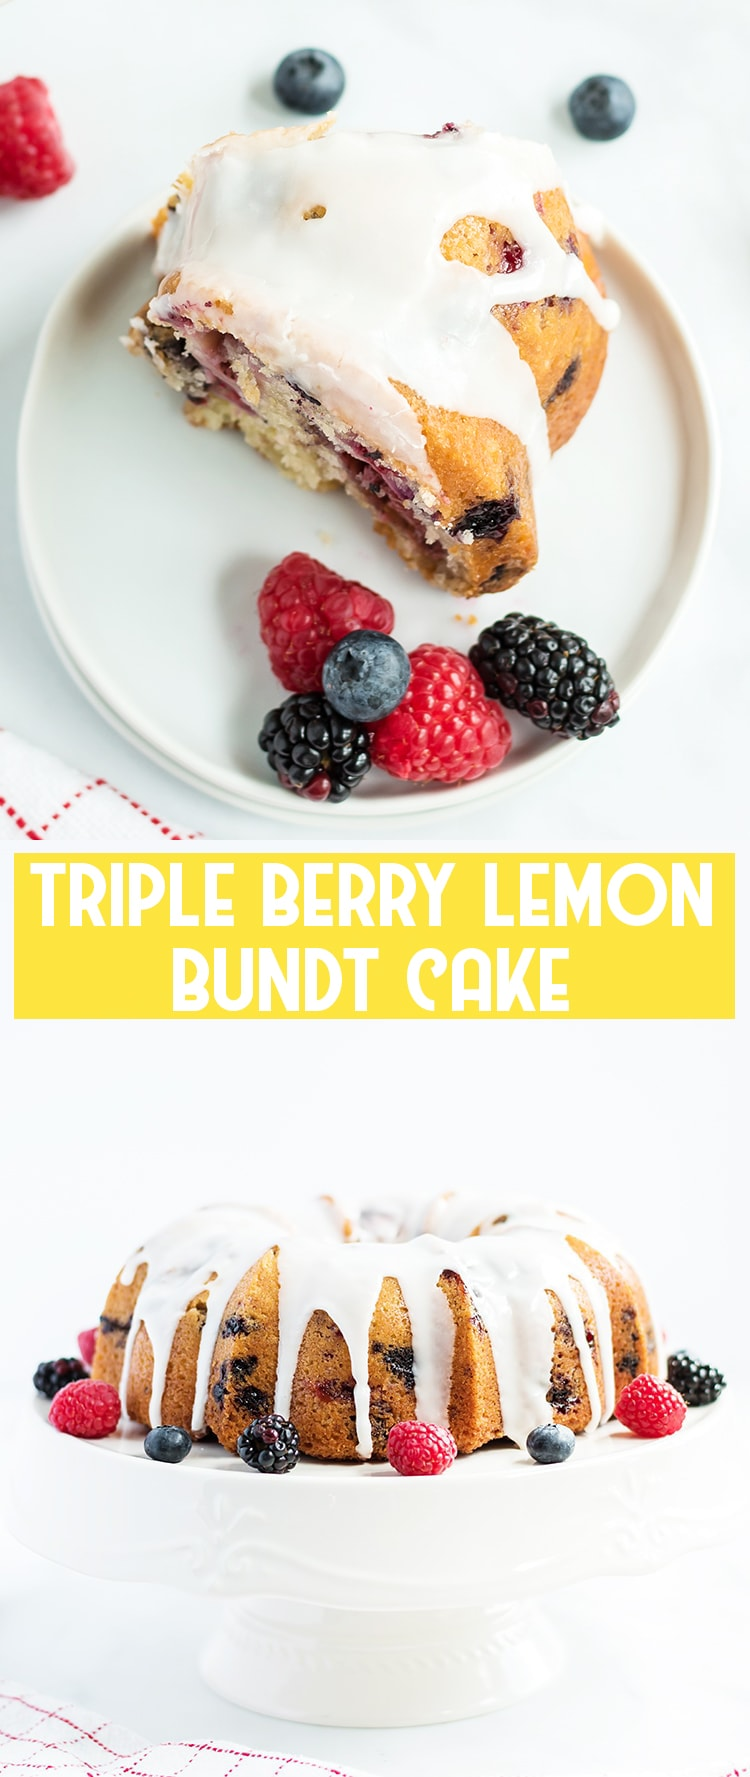 Triple Berry Lemon Bundt Cake on a white plate and another photo of the cake on a cake standwhite cake stand with text overlay for pinterest